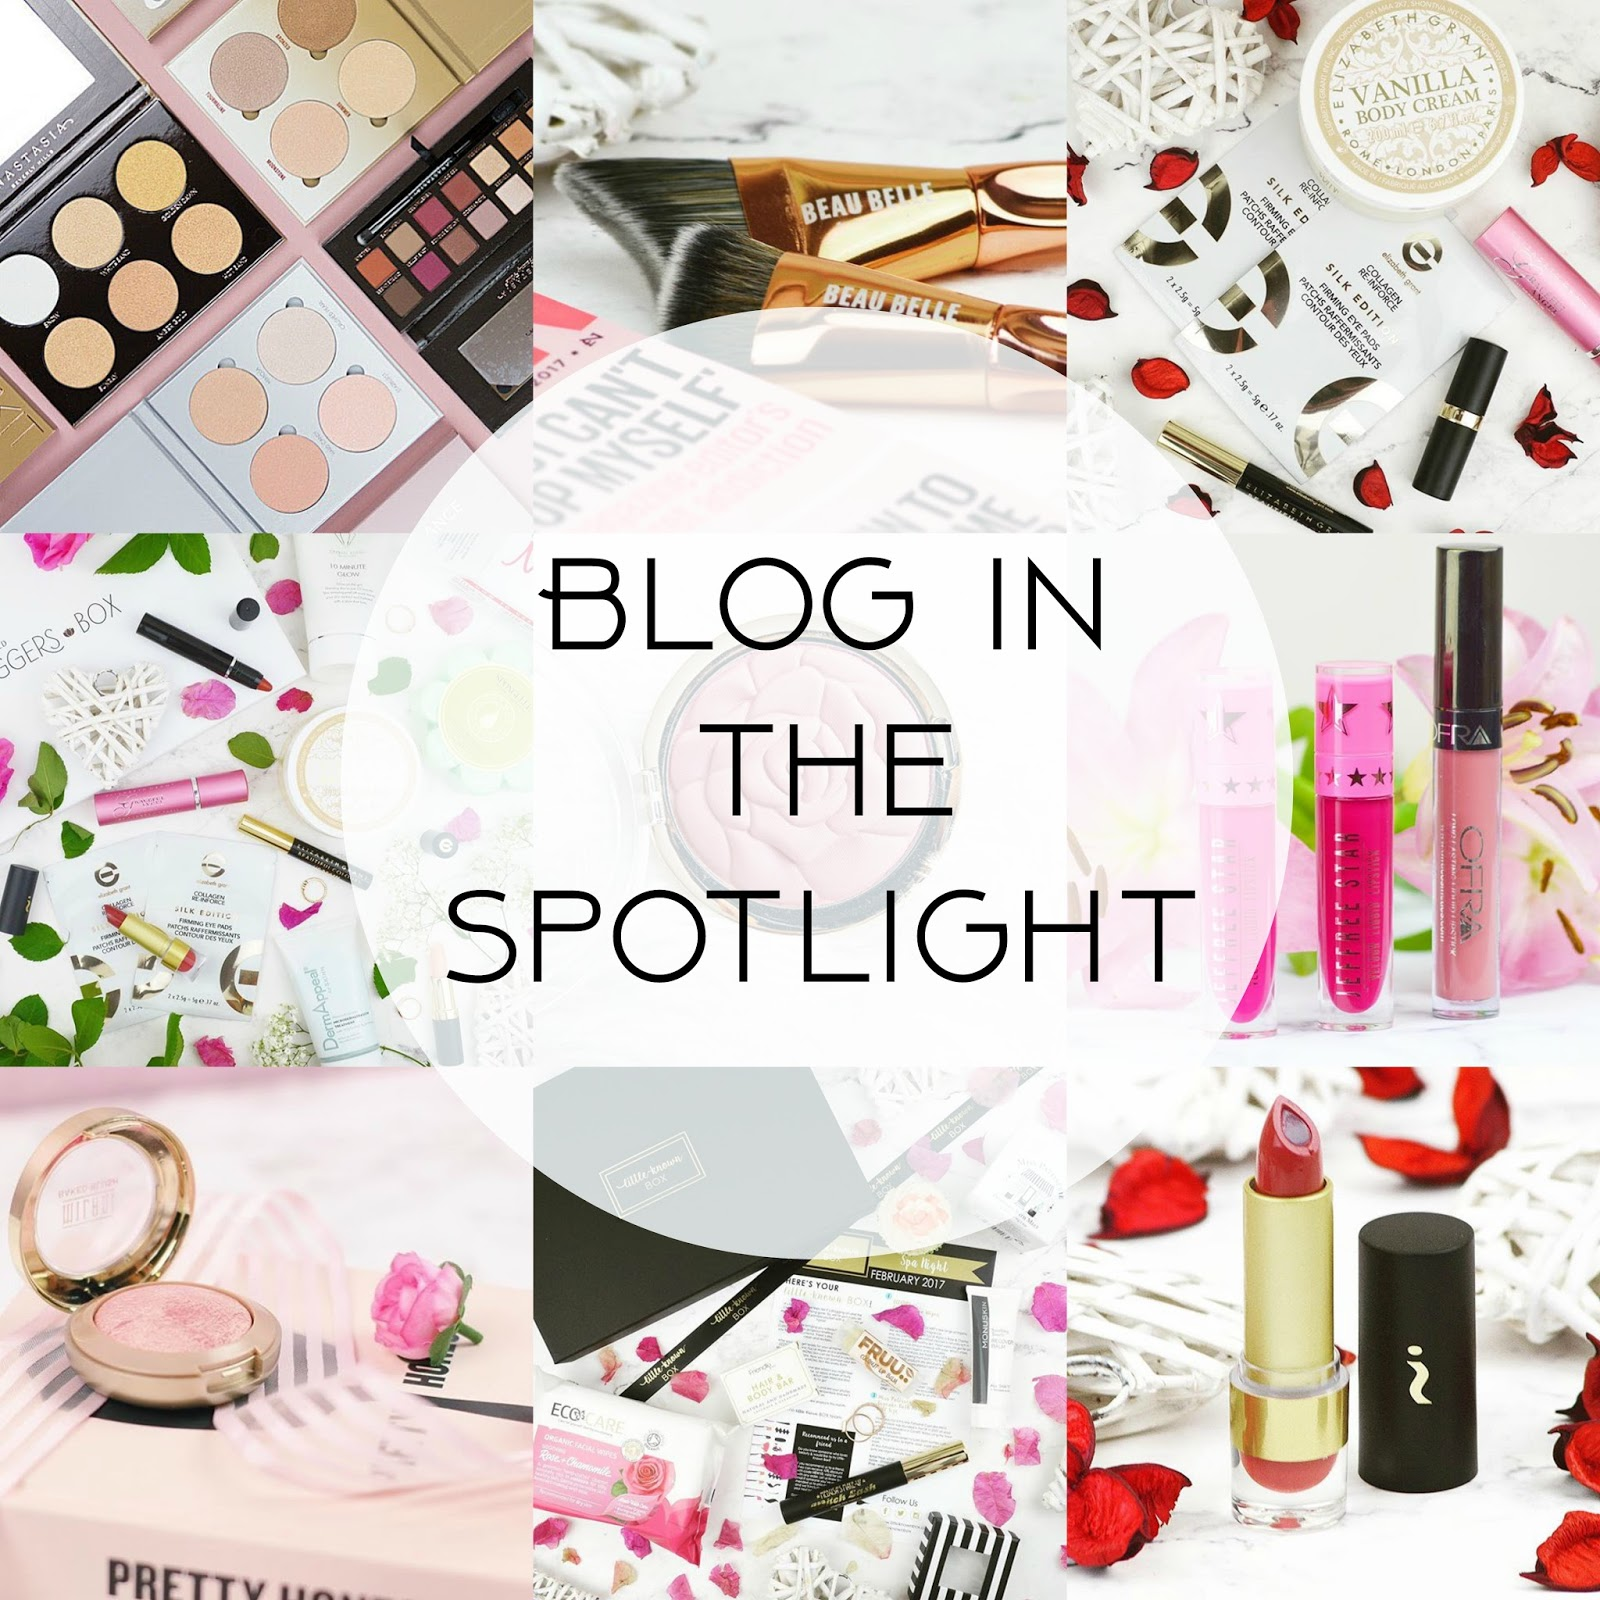 Blog In The Spotlight - Love, Laughs, Lipstick